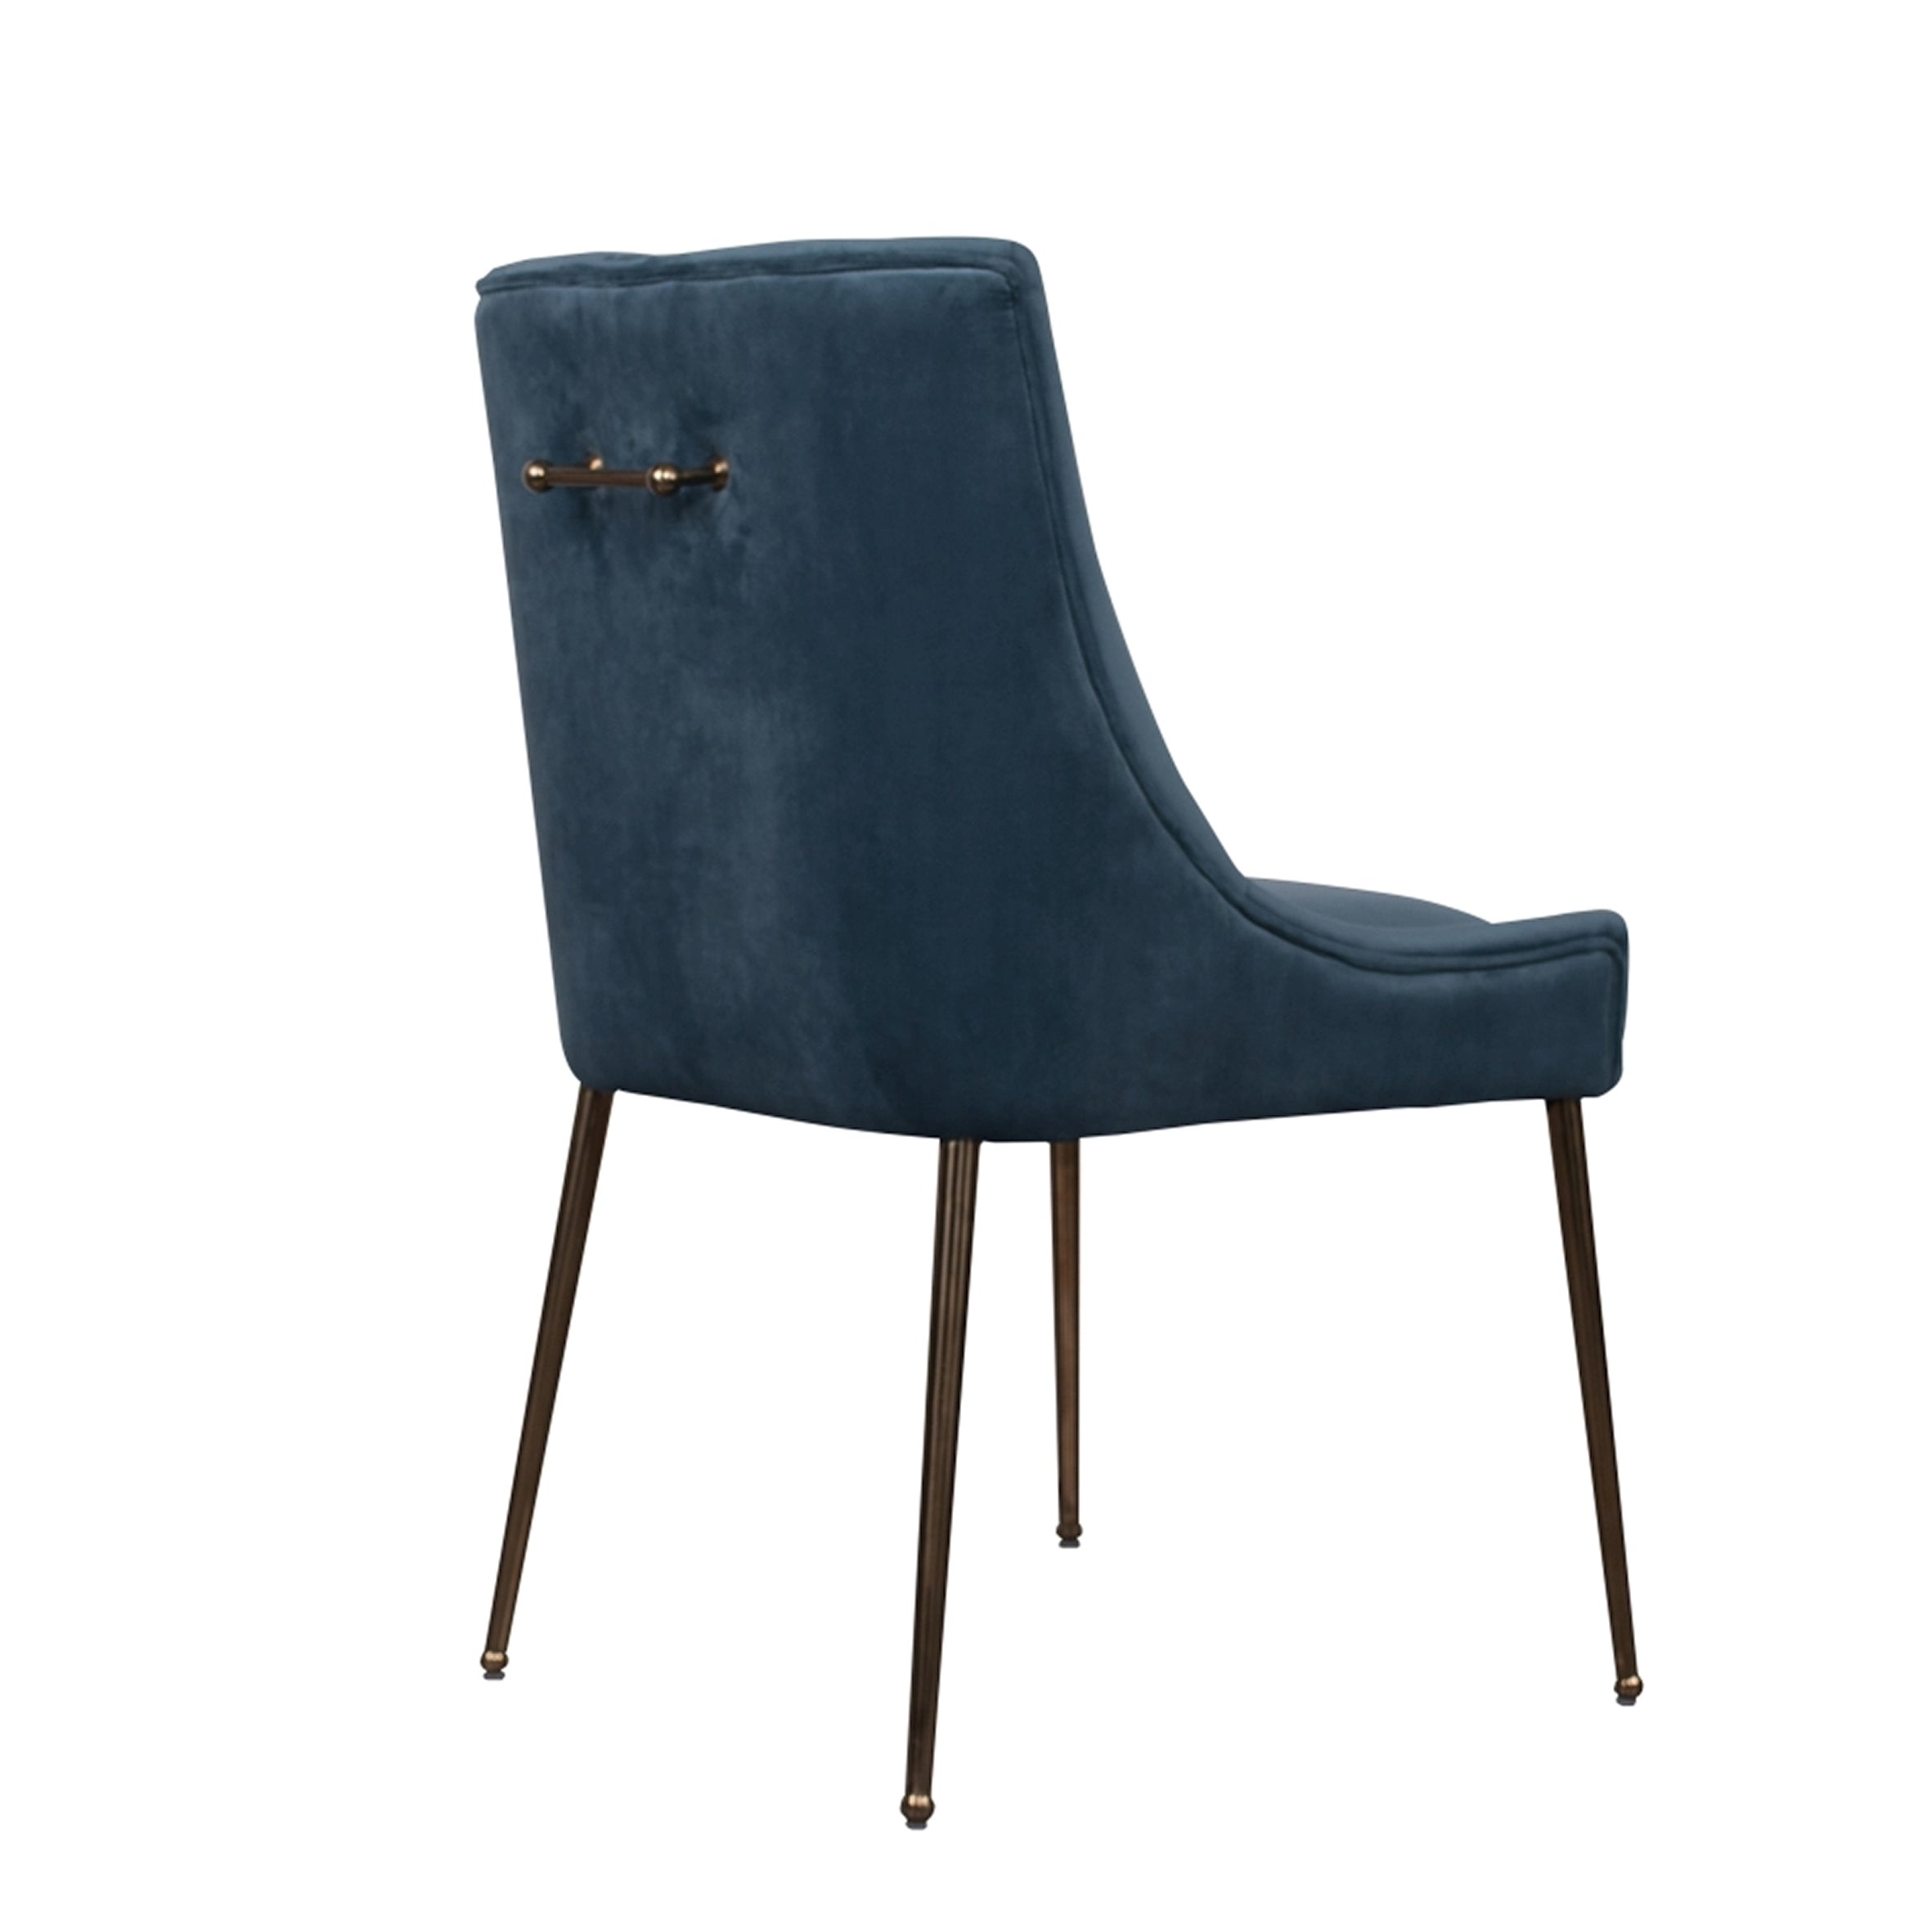 Carrie Caribbean Velvet Dining Chairs (Sold as Pair)